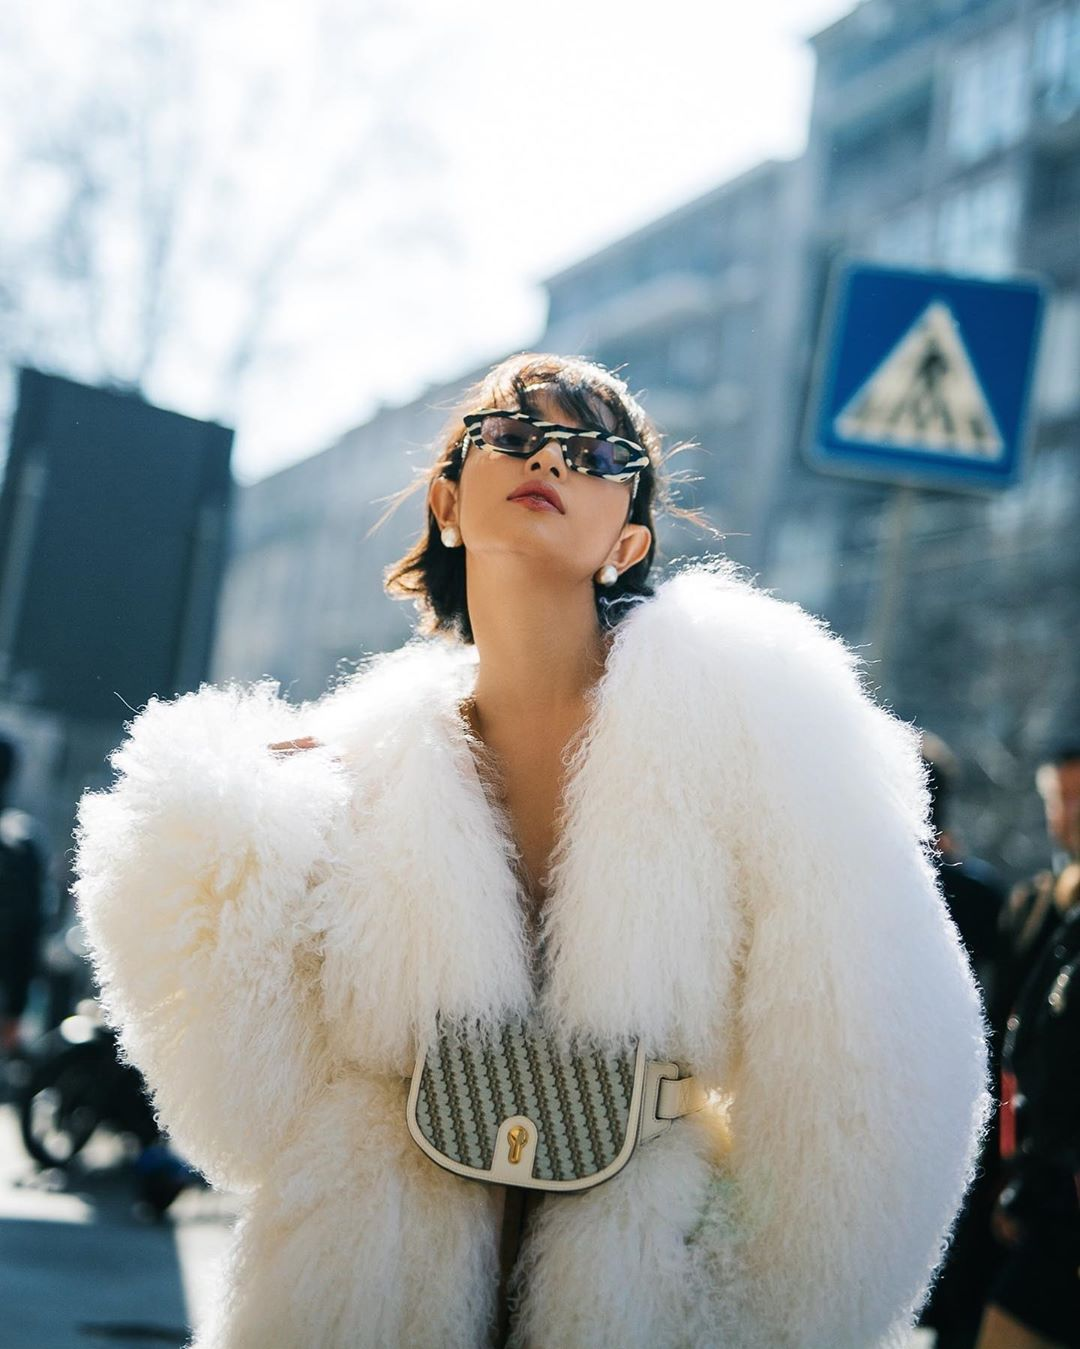 Chau Bui is seen on a photo she posts on her Instagram in February 2020, capturing she while attending a fashion event in Milan